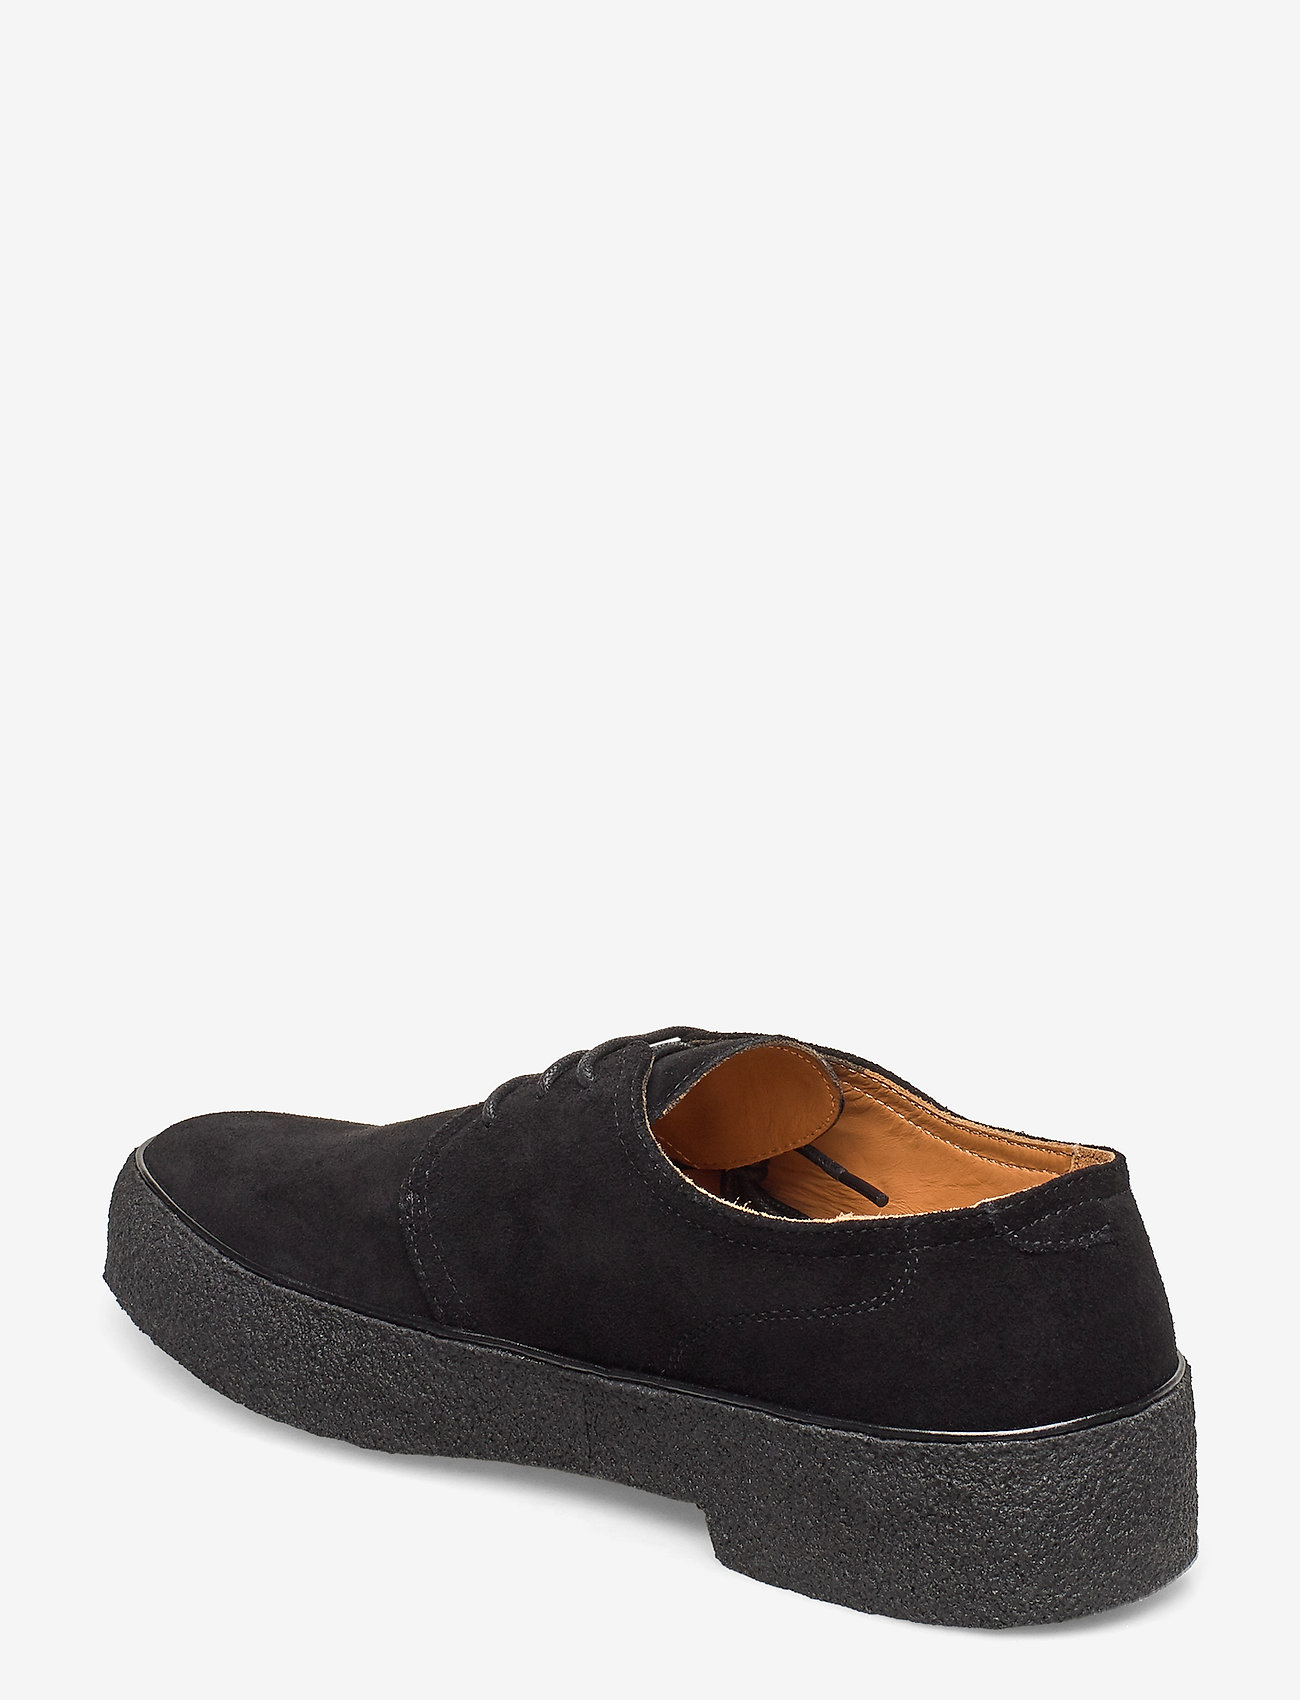 Org.12 (Black) - Playboy Footwear